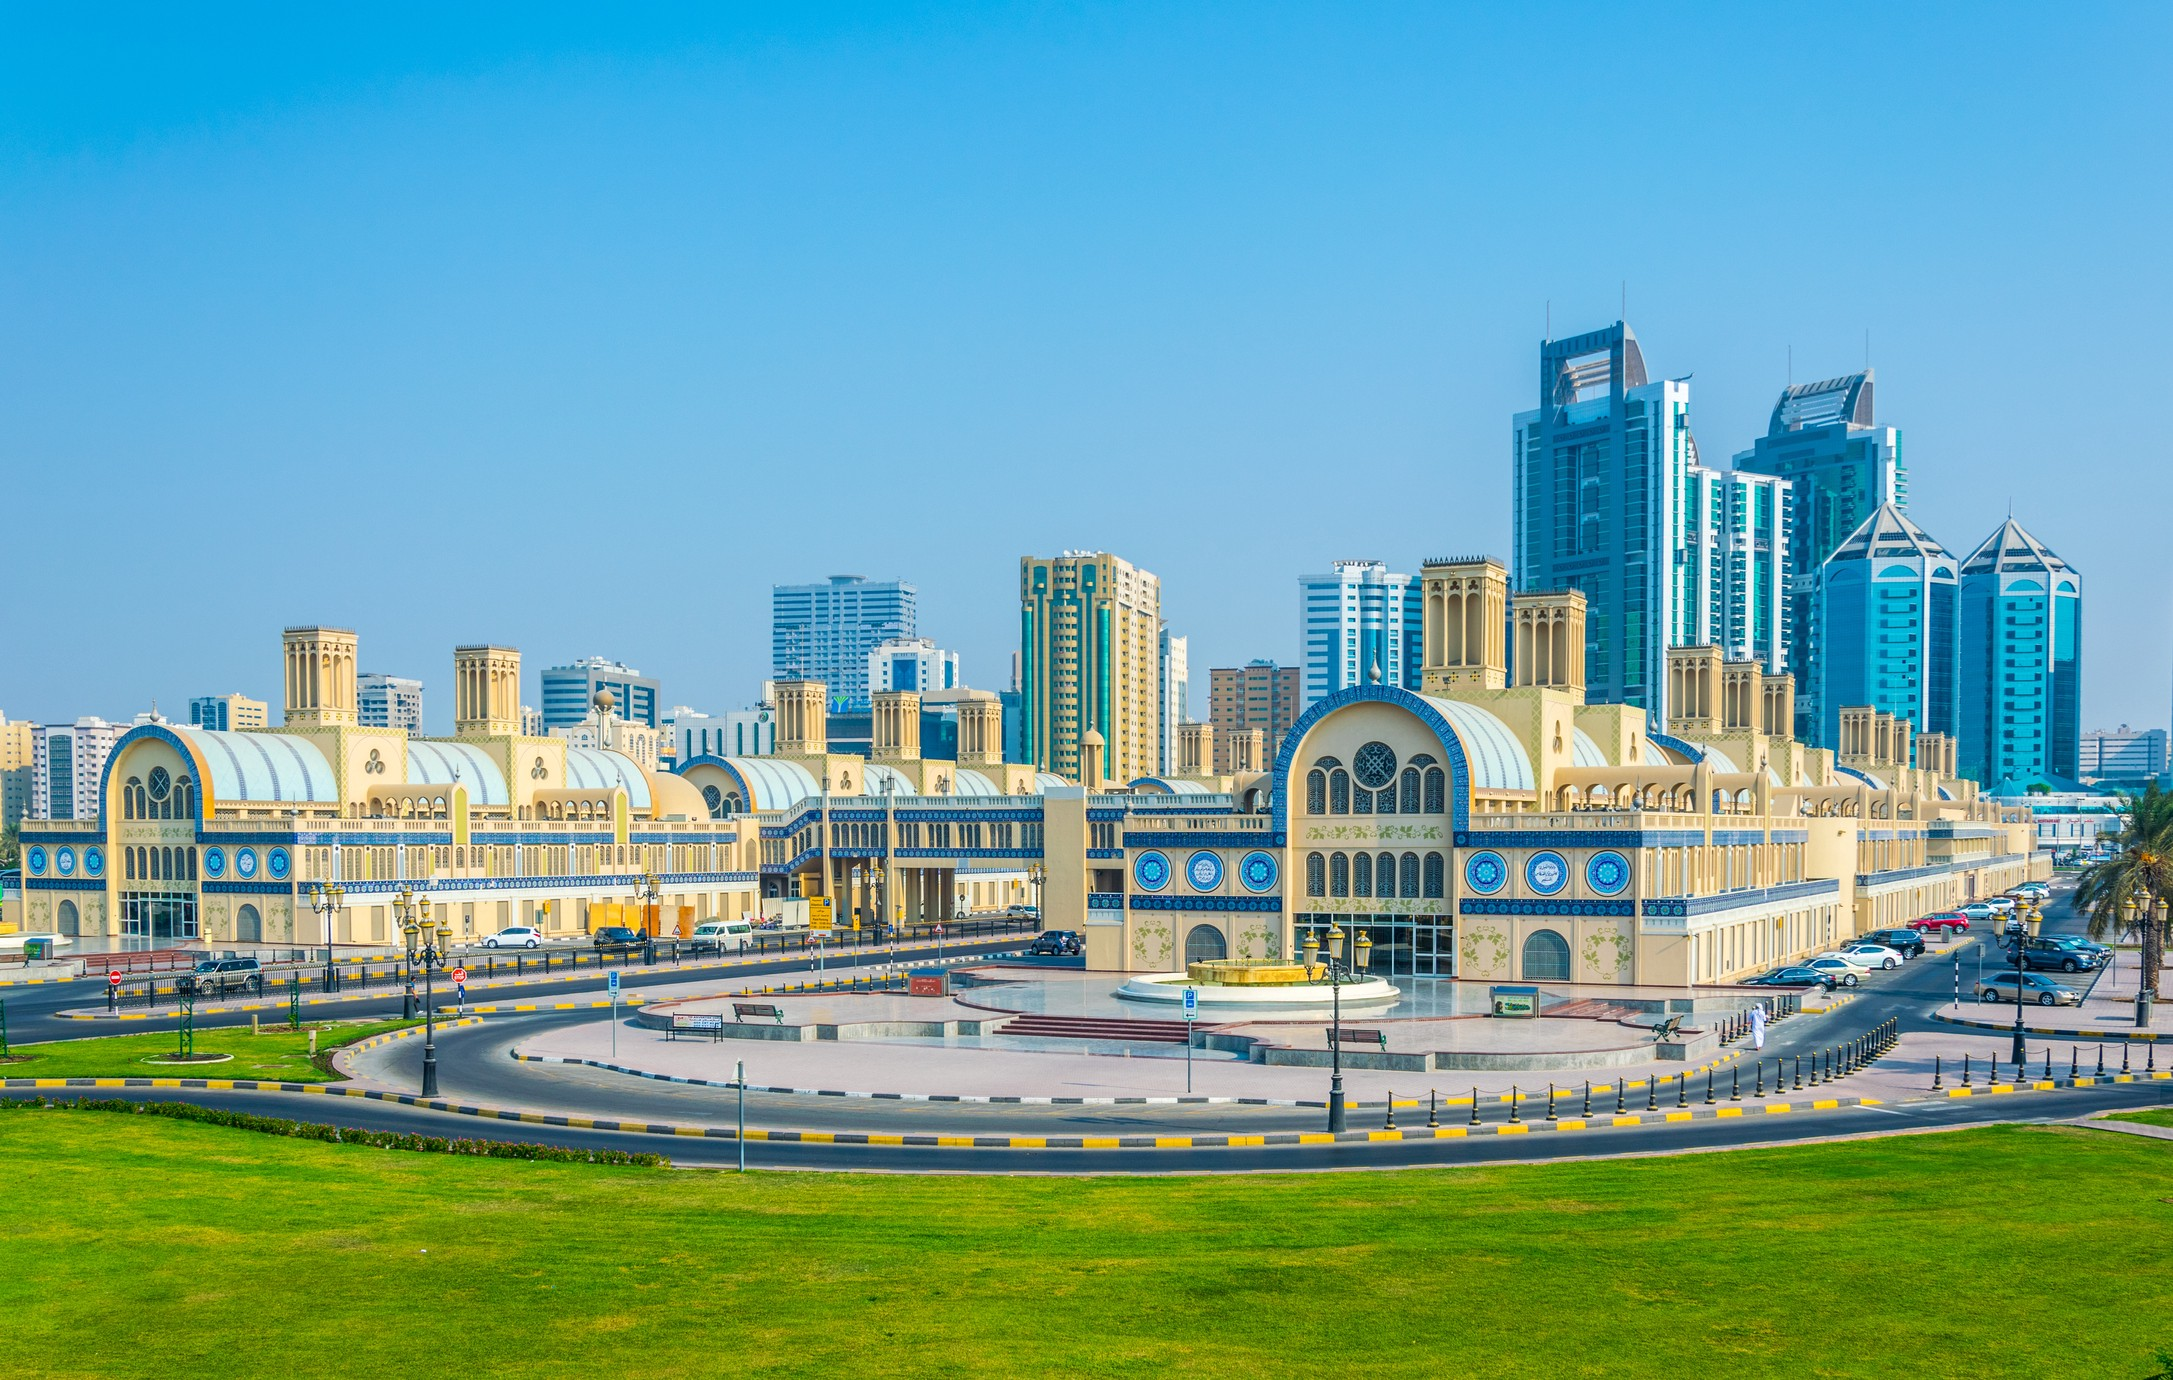 View of the central Souq in Sharjah, UAE